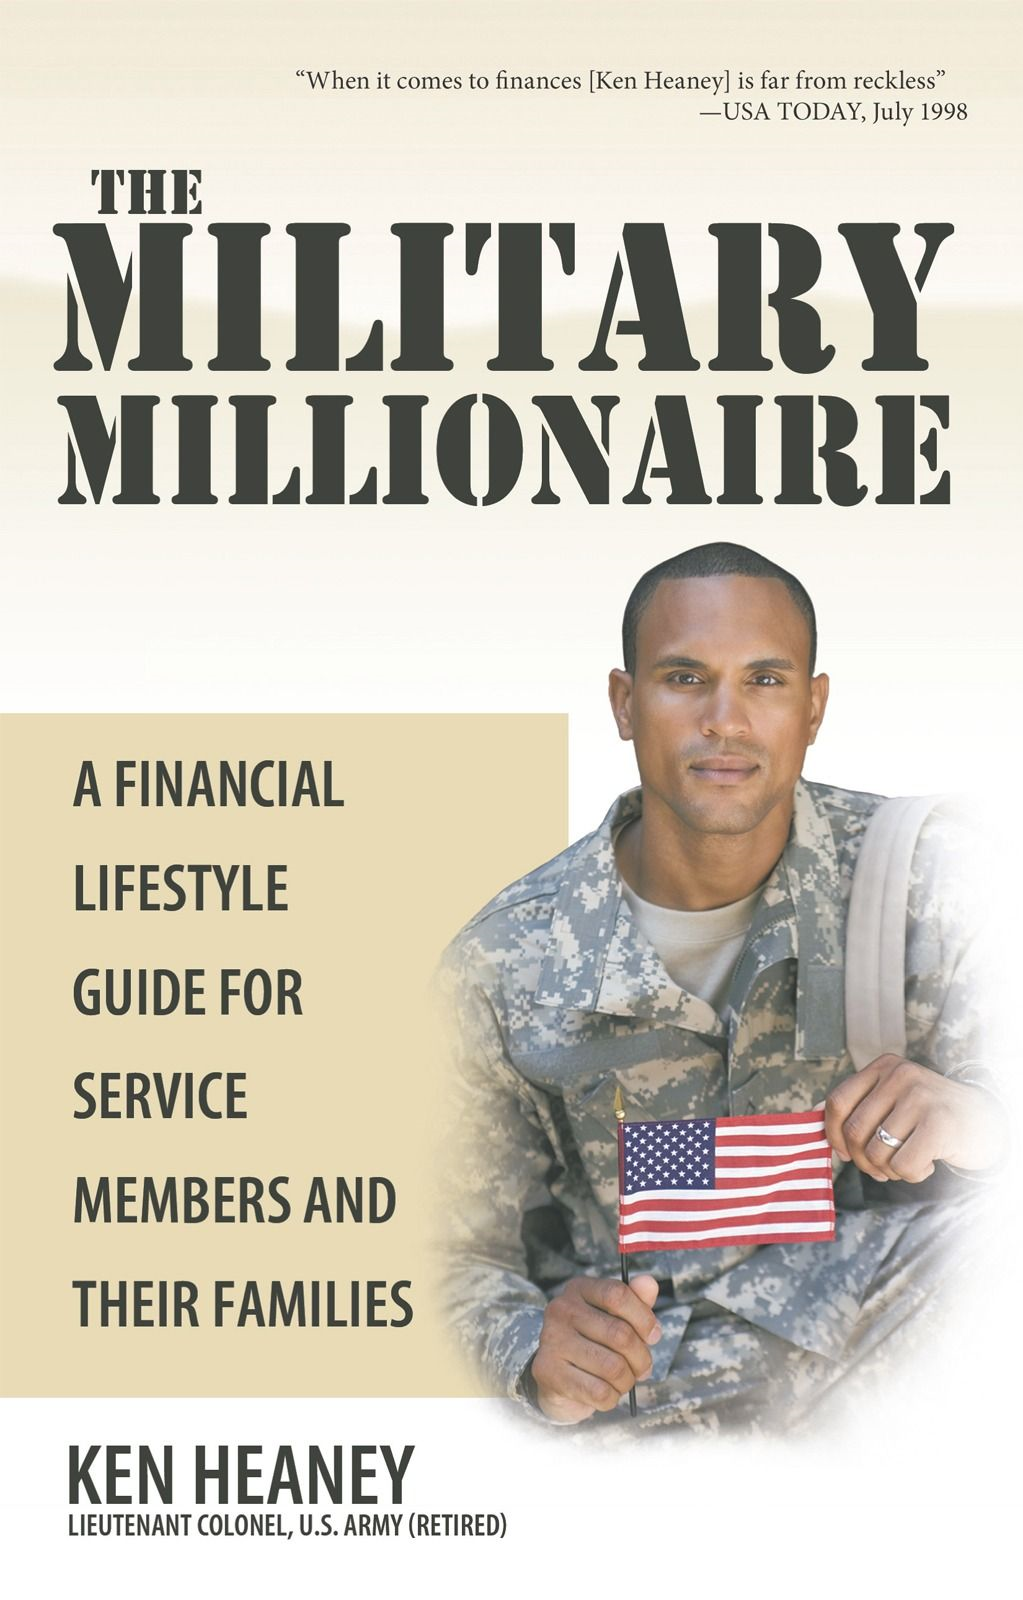 The Military Millionaire By: Ken Heaney